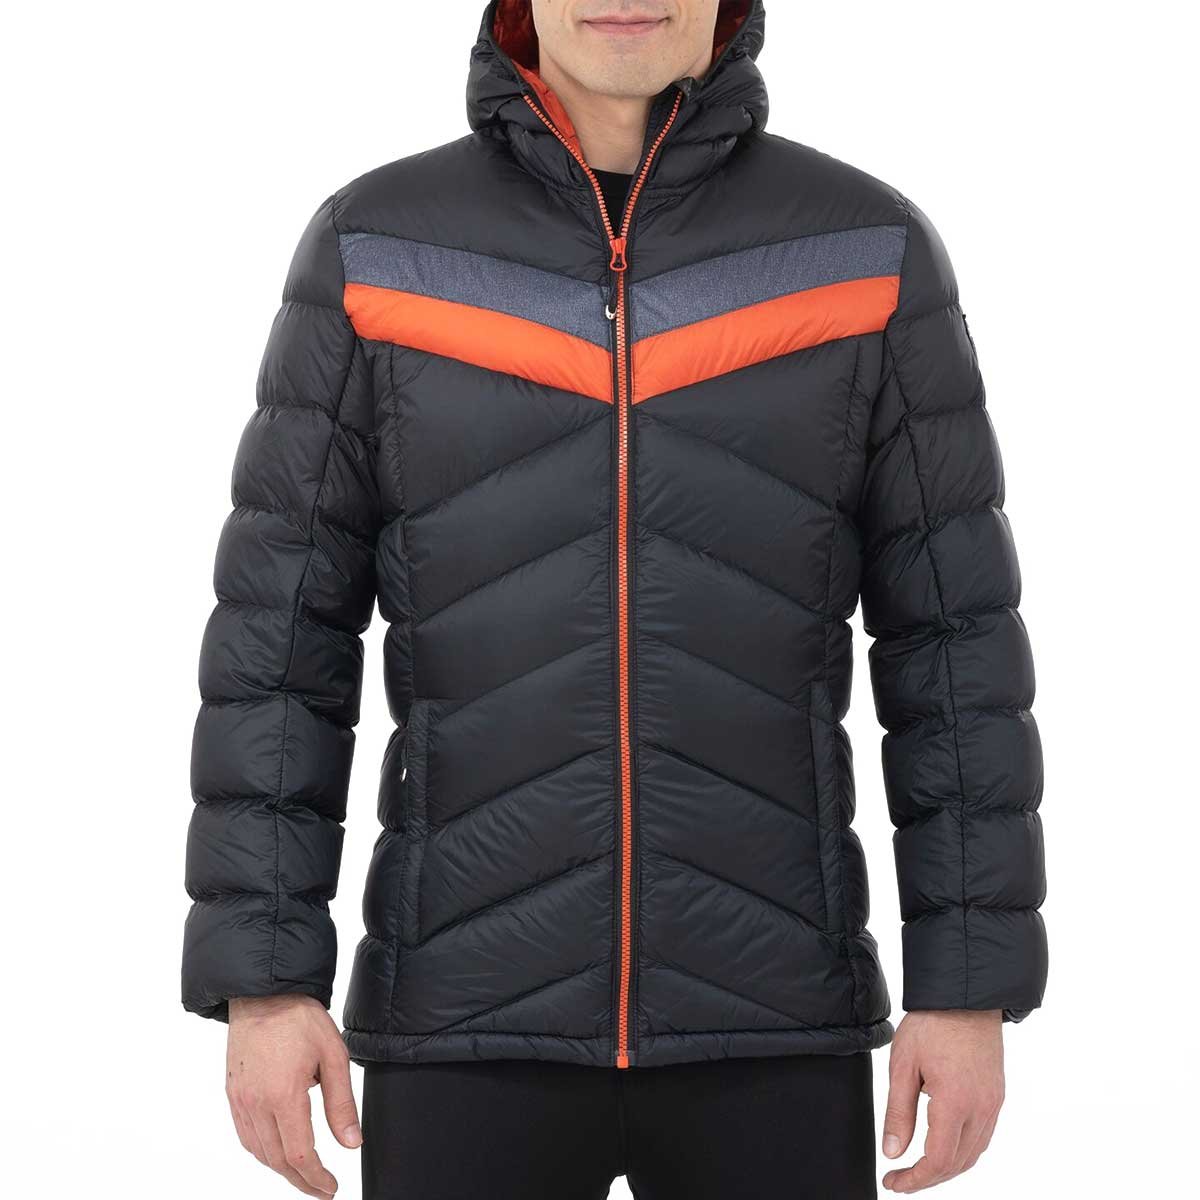 Swix Men's Romsdal Down Jacket in Black